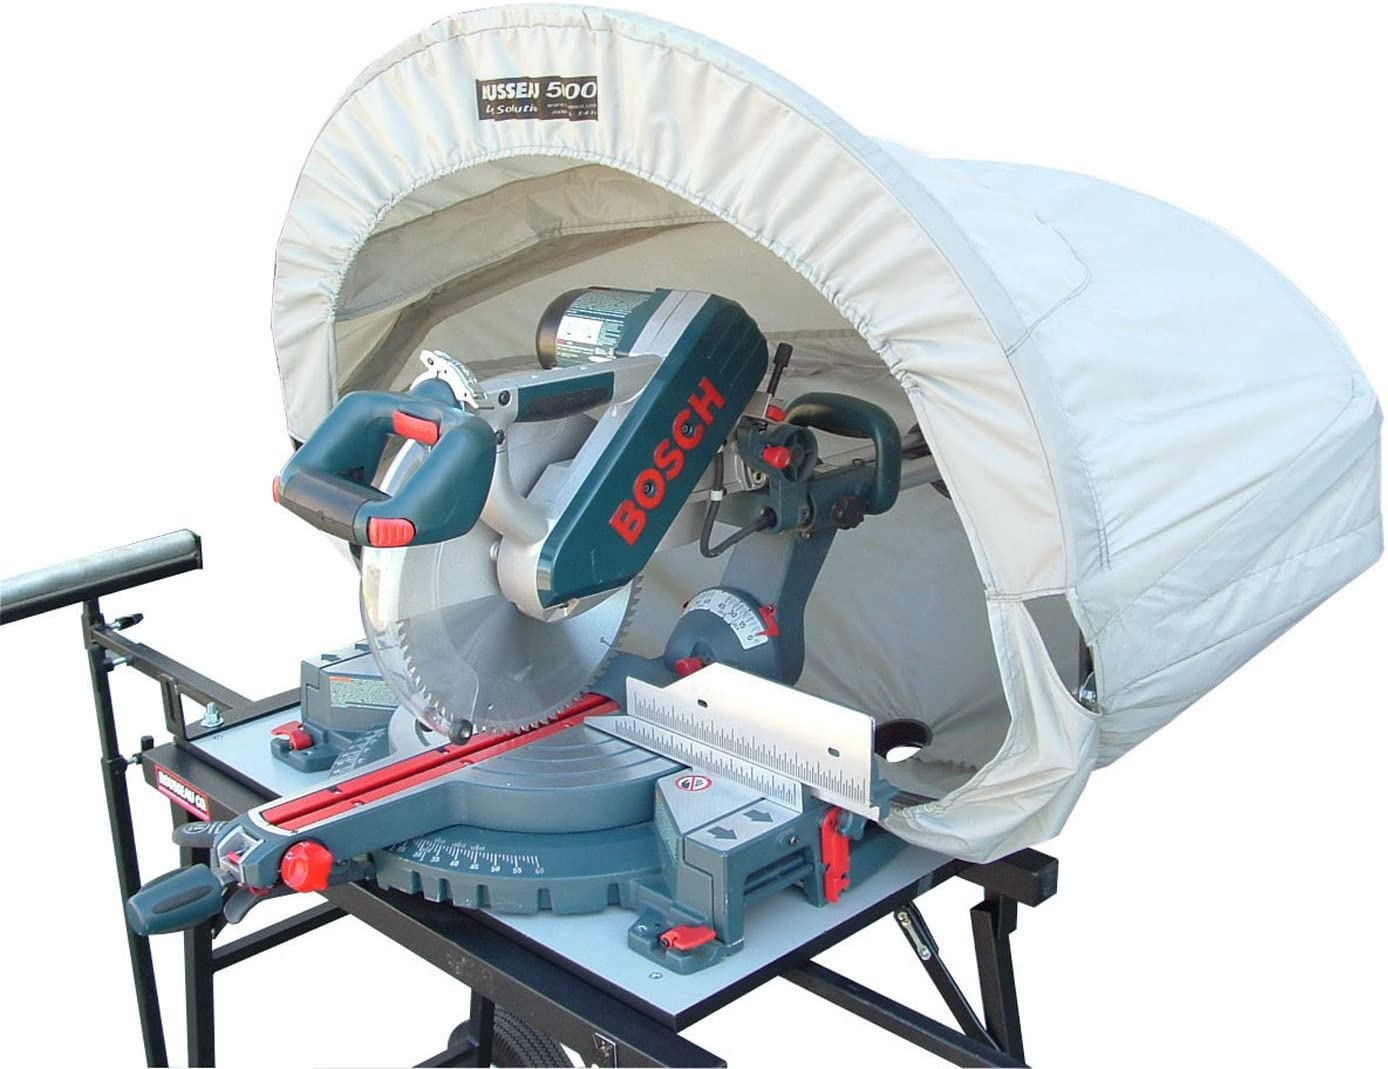 Rousseau 5000 Dust Solution for Miter Saws